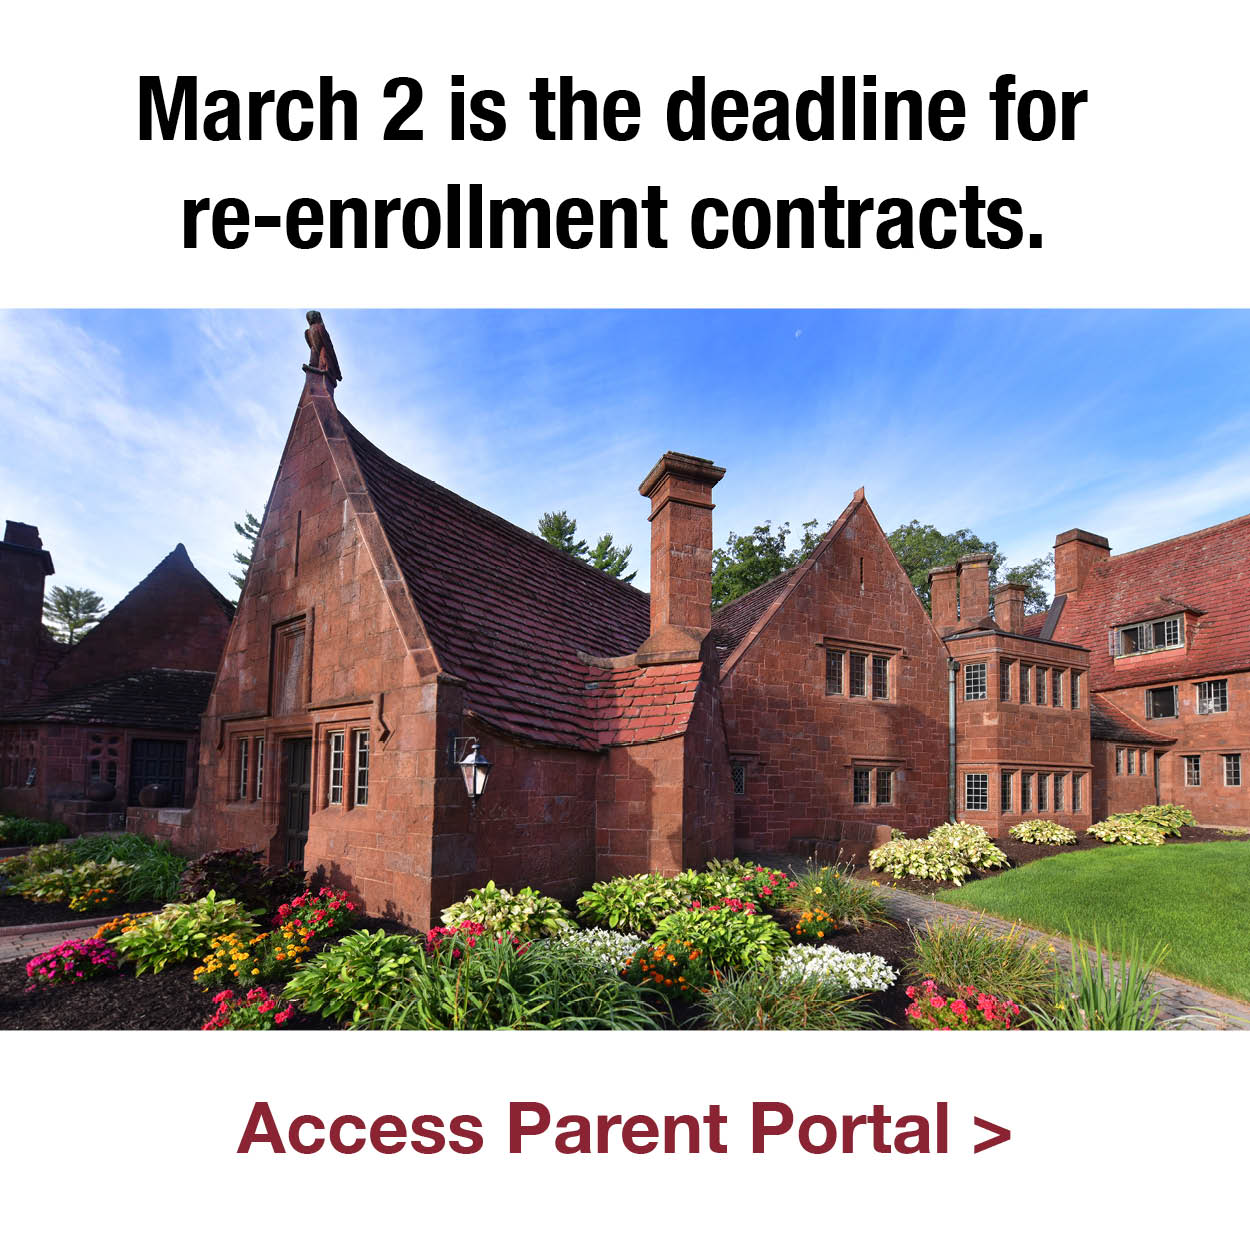 Re-enrollment contracts